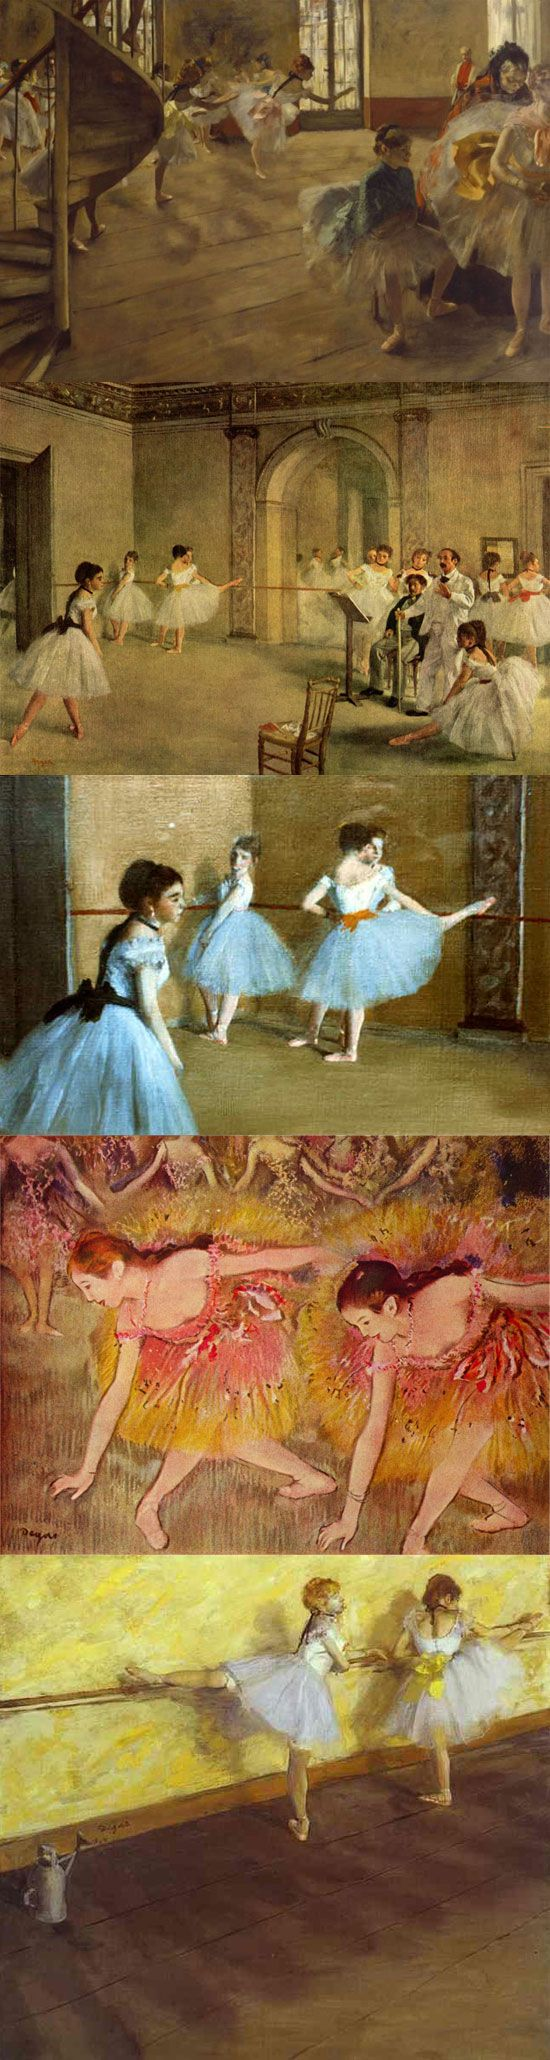 Lovely Degas ballet series makes me want a print to grace one of my walls.